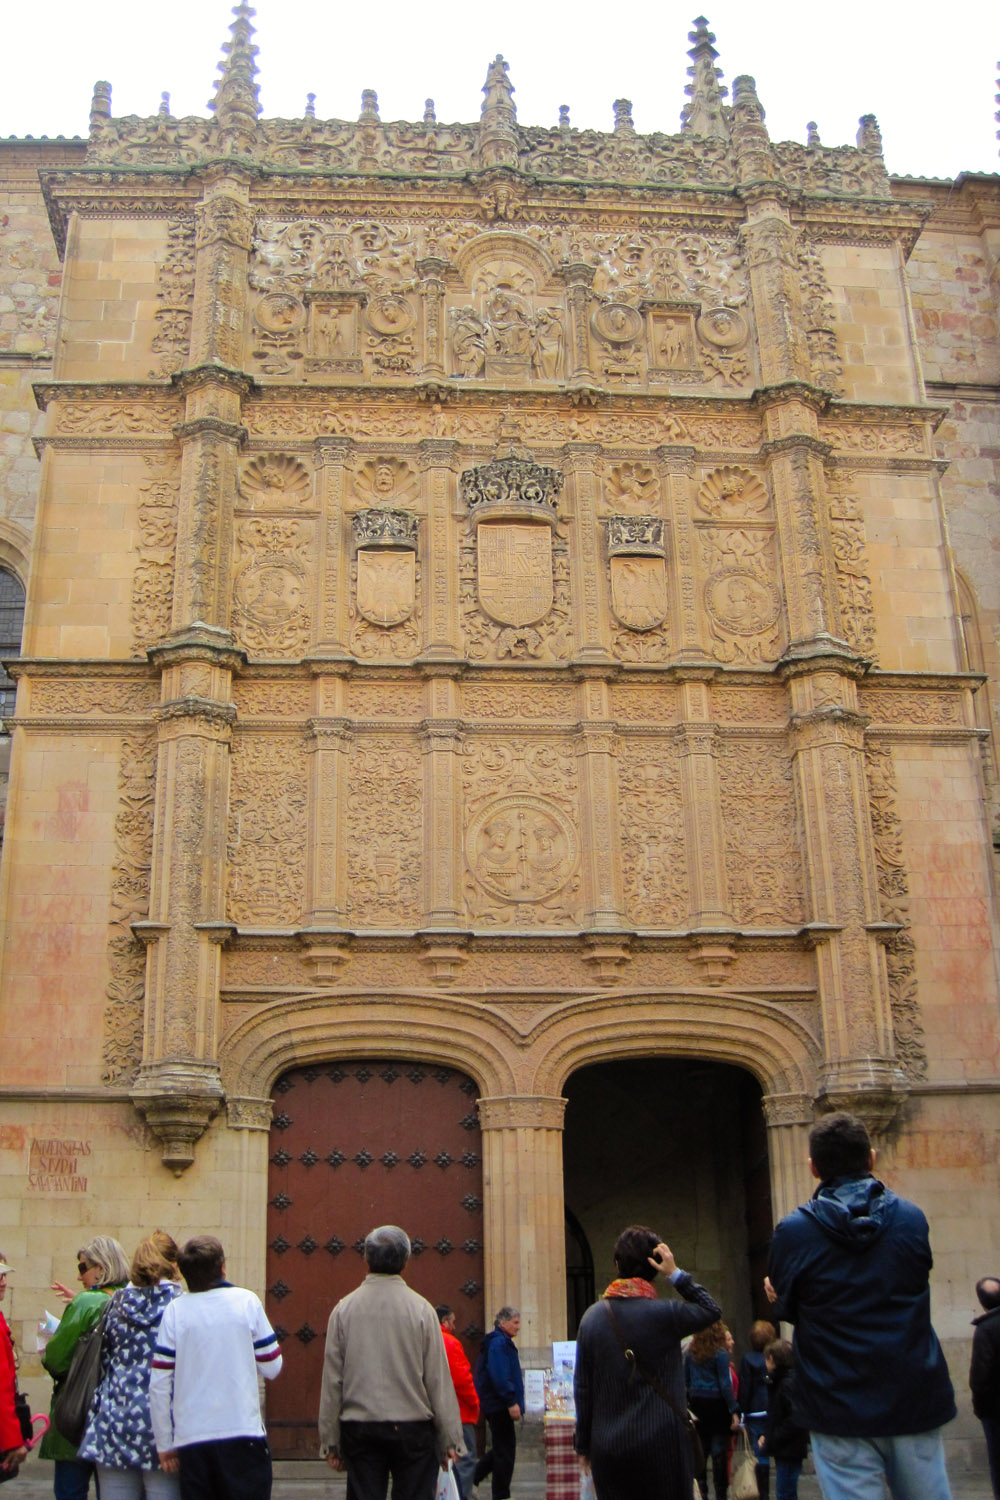 Fachada de la Universidad Civil de Salamanca